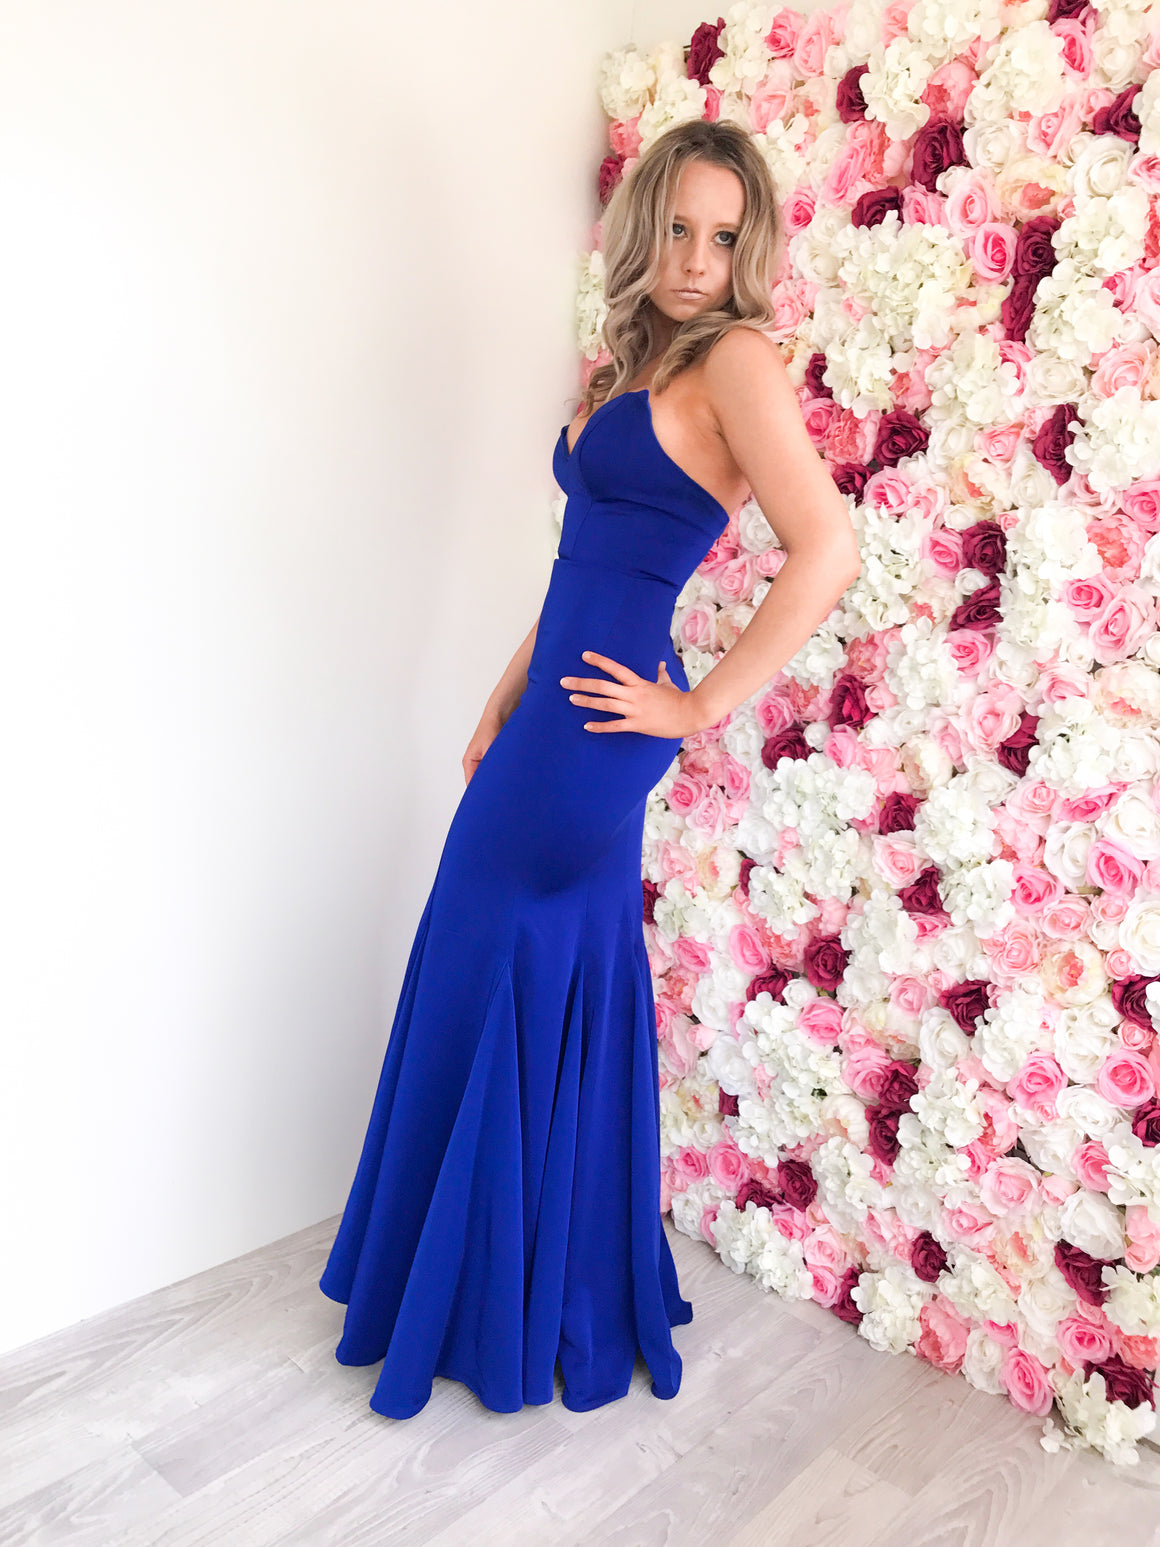 Hire Formal Dresses Online QLD